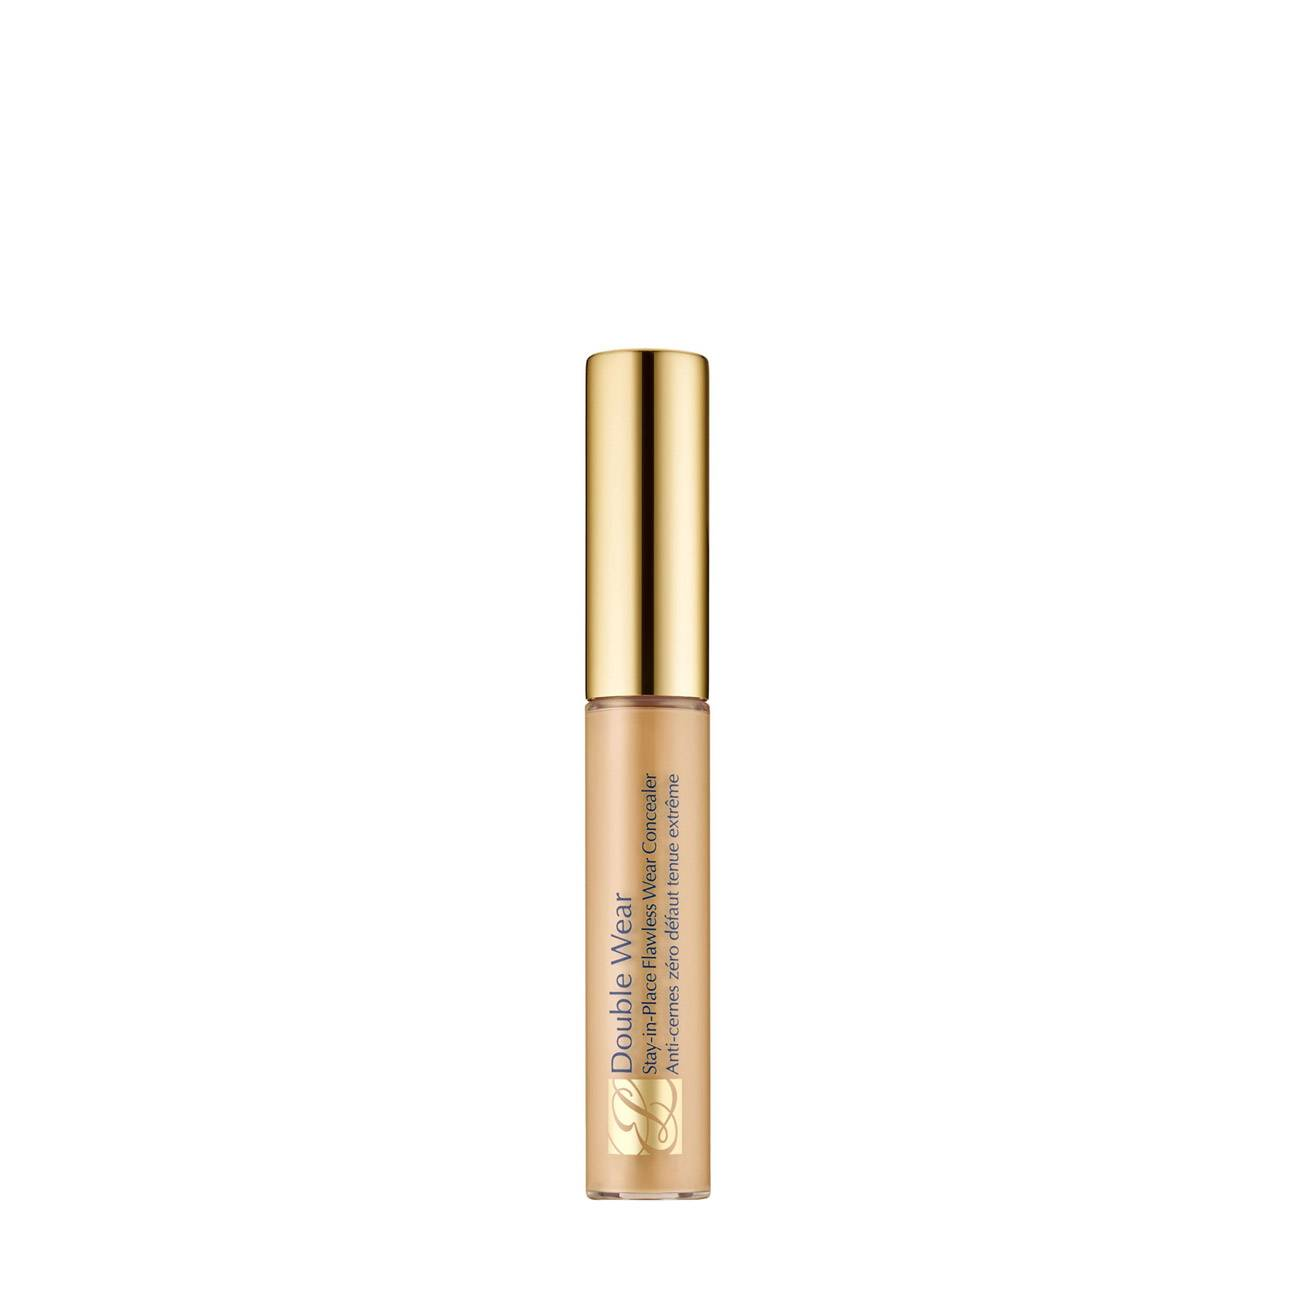 Double Wear Stay-In-Place Concealer 1w 7ml Estée Lauder imagine 2021 bestvalue.eu